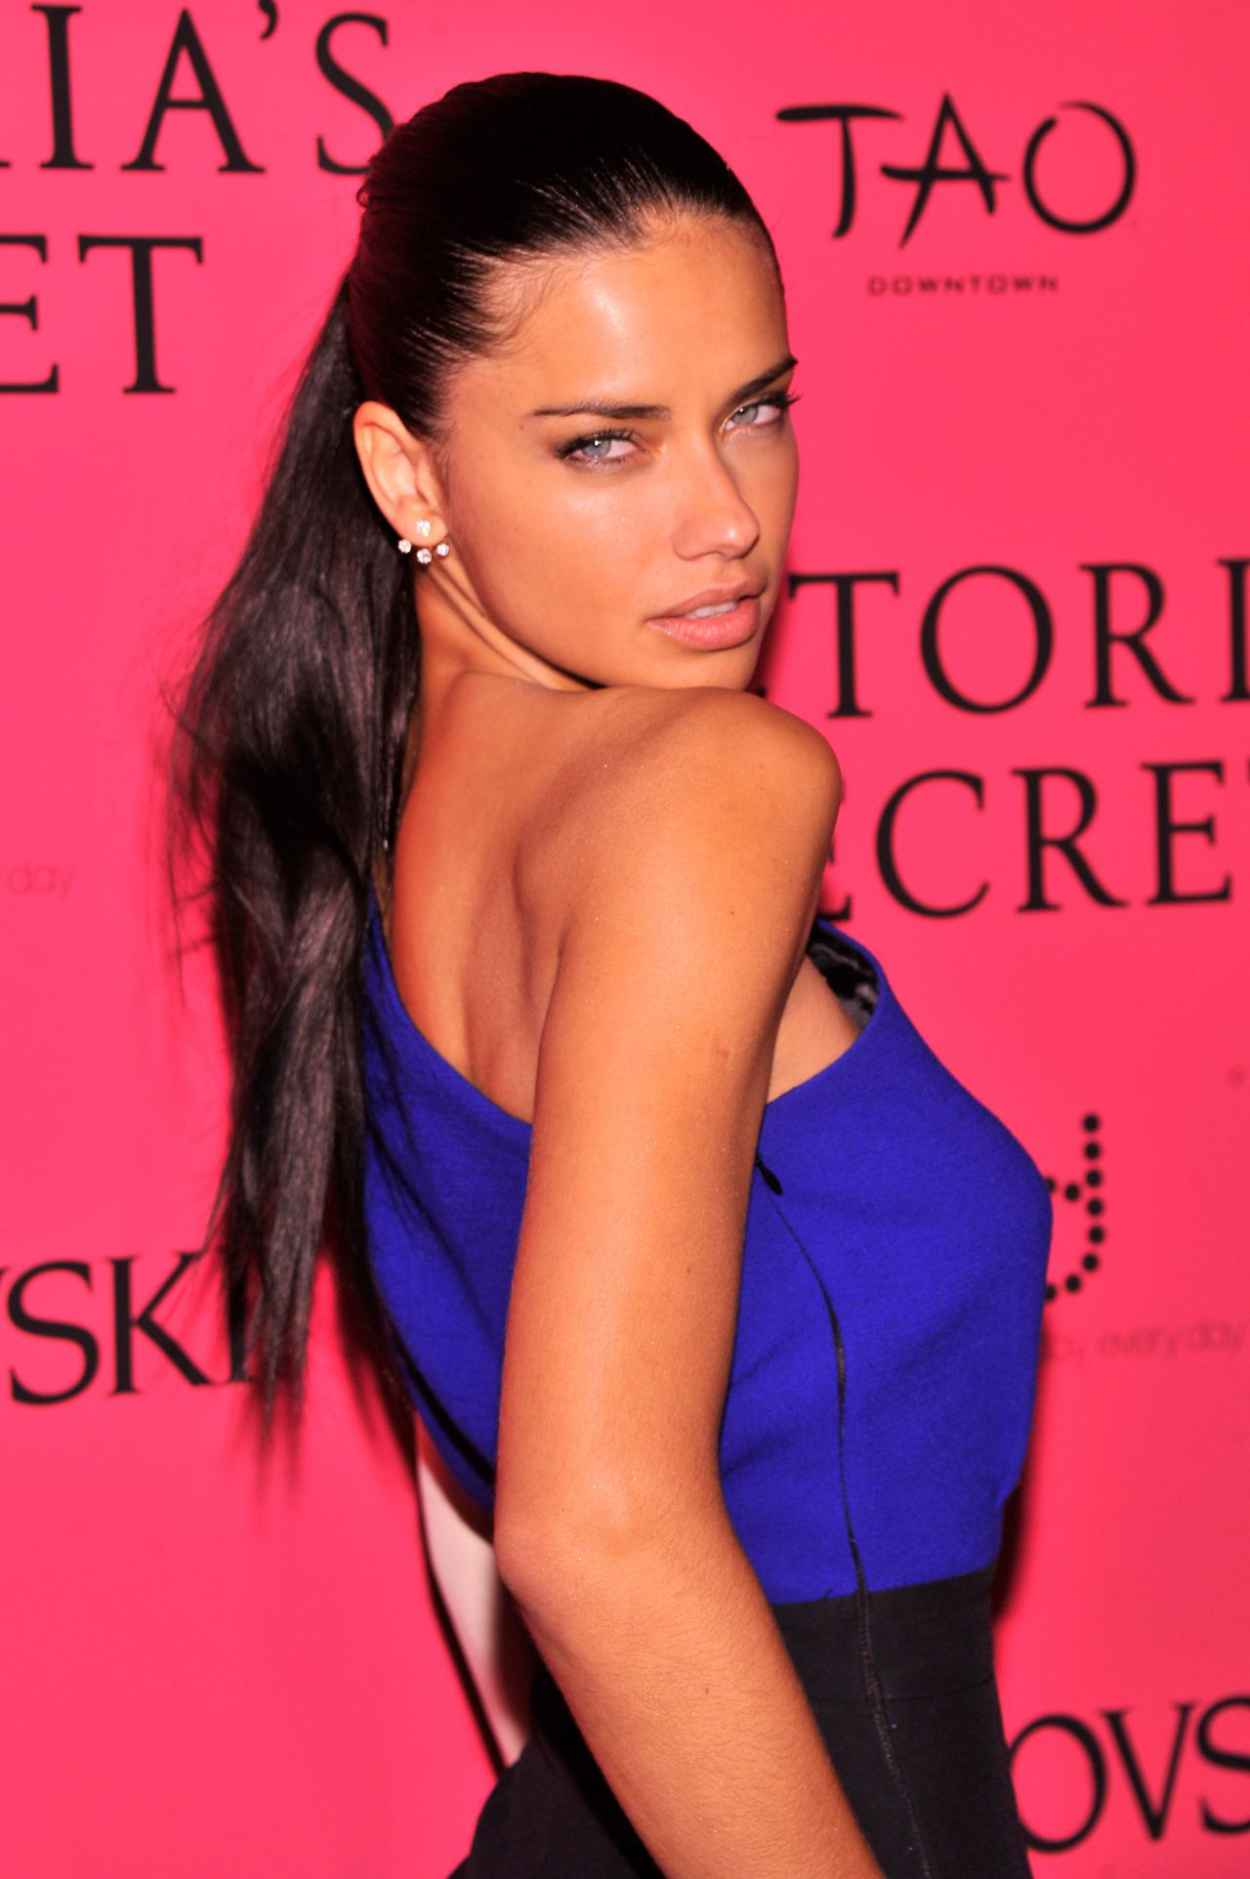 Adriana Lima Red Carpet Photos - Victoria-s Secret Fashion After Party in New York - November 2015-1